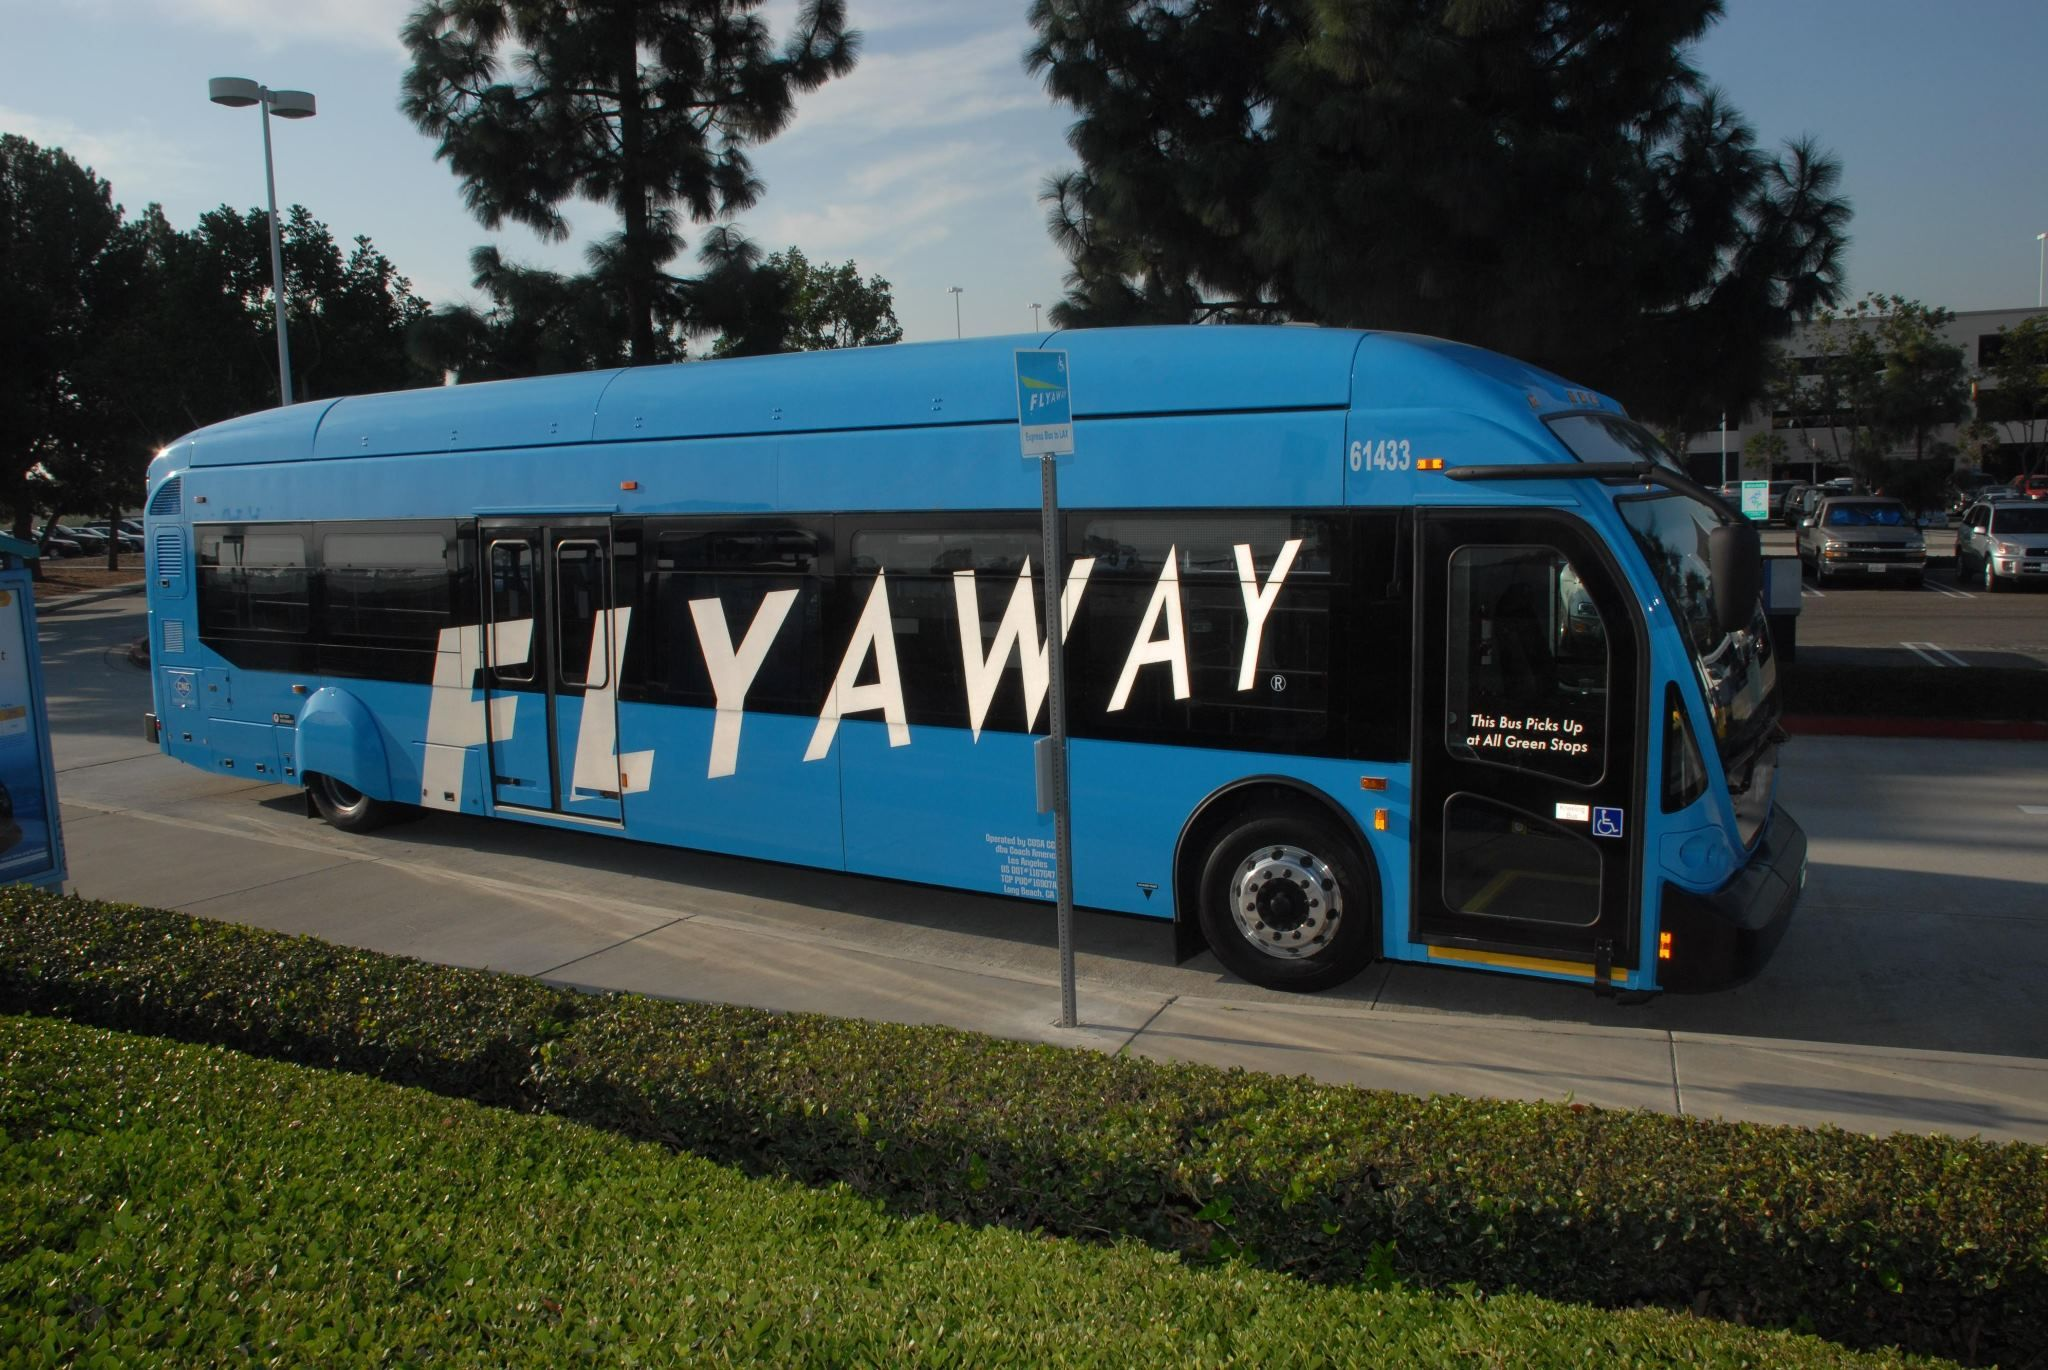 Why Drive To Lax When You Can Take The Convenient Lax Flyaway Bus This Non Stop Daily Service O Los Angeles International Airport Singapore Airlines Van Nuys